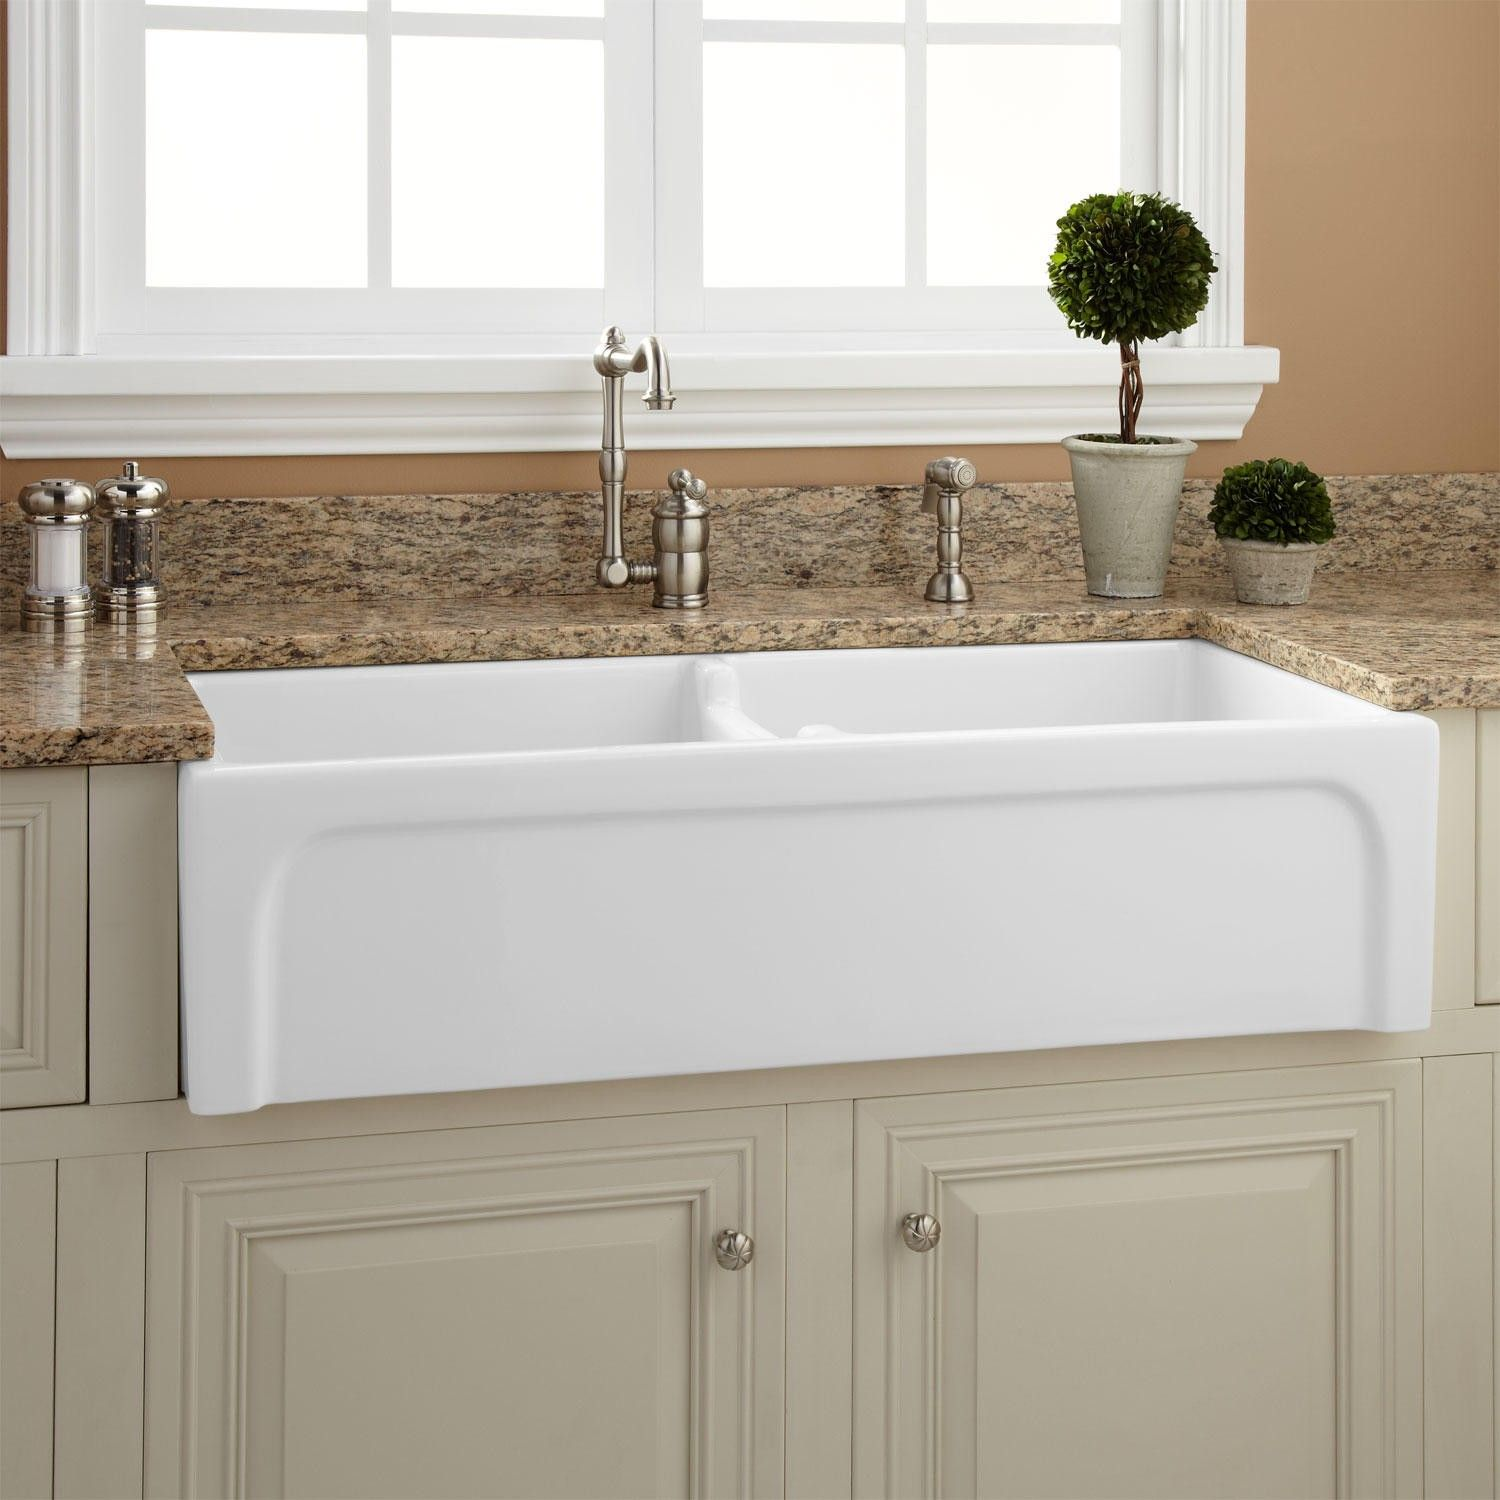 39 Risinger Double Bowl Fireclay Farmhouse Sink Cat Front White